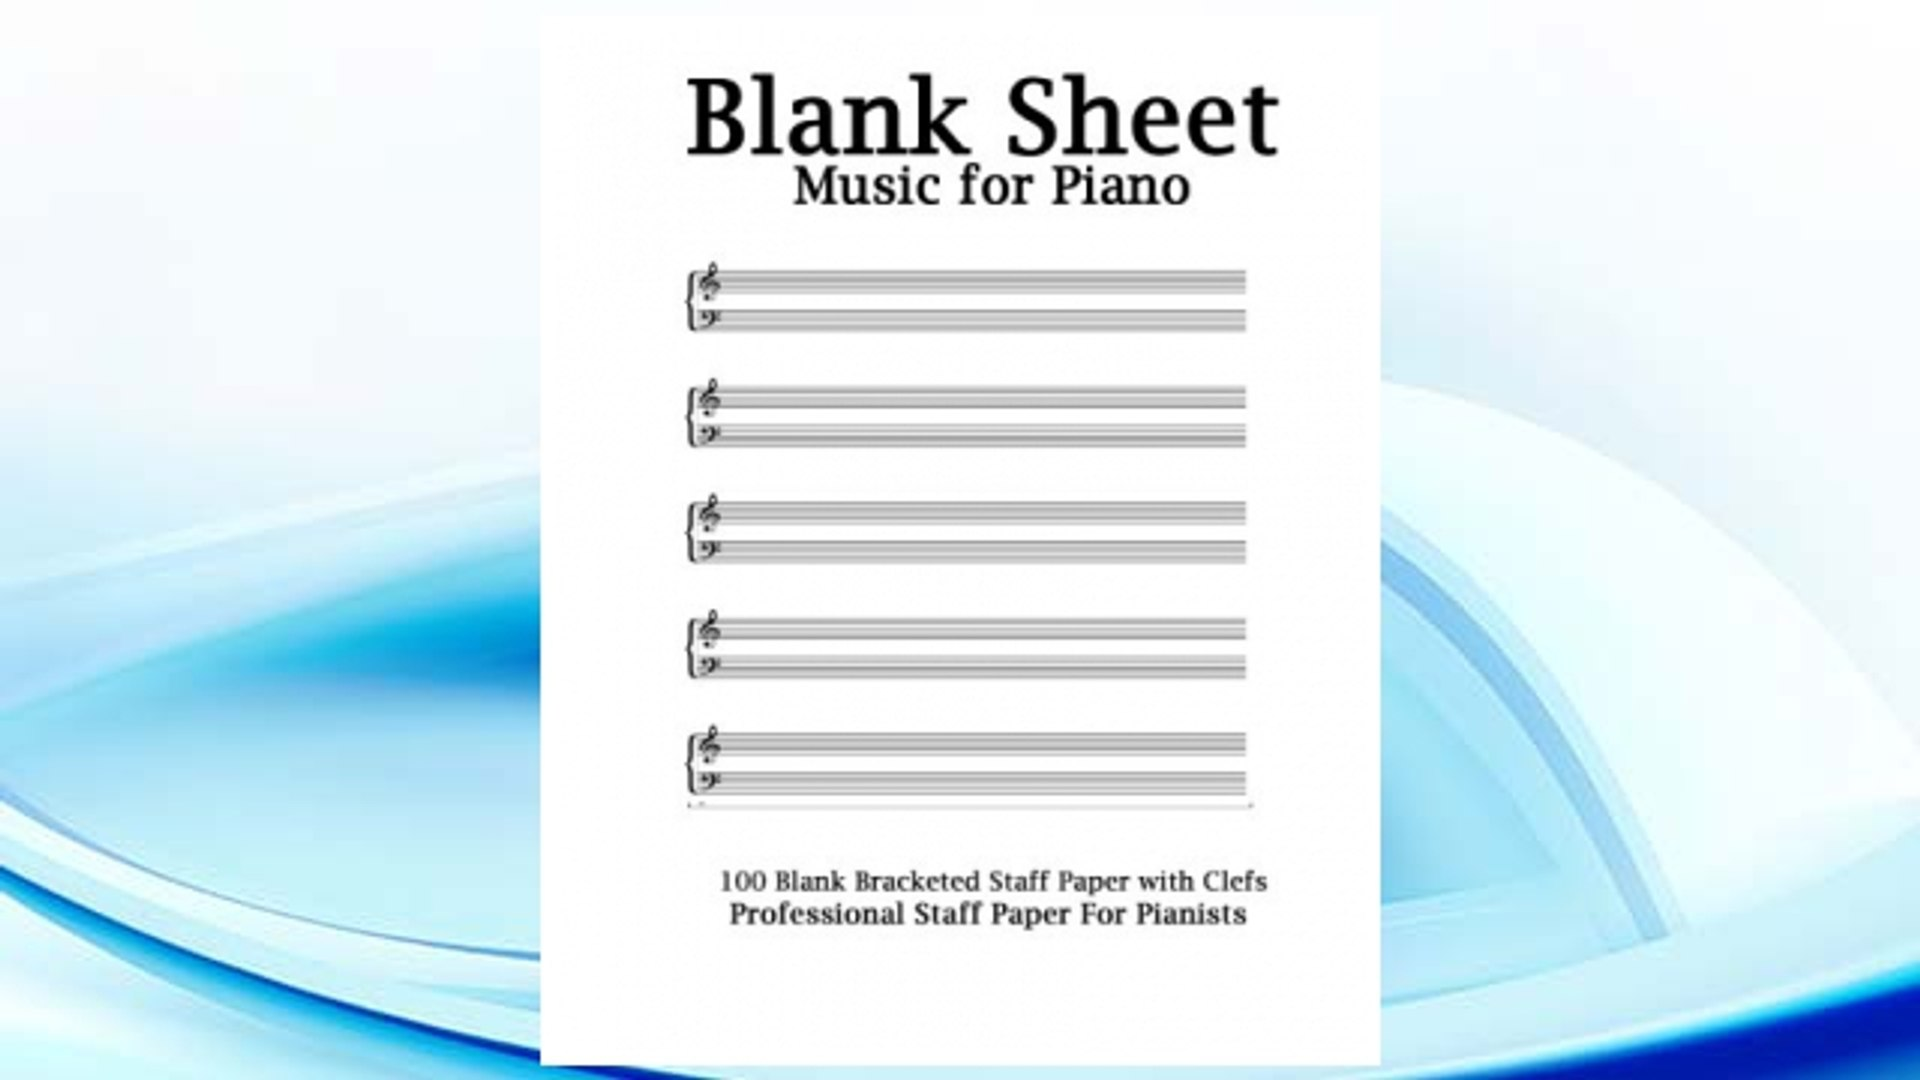 Blank Sheet Music For Piano: White Cover, Bracketed Staff Paper, Clefs Notebook,100 pages,100 full s